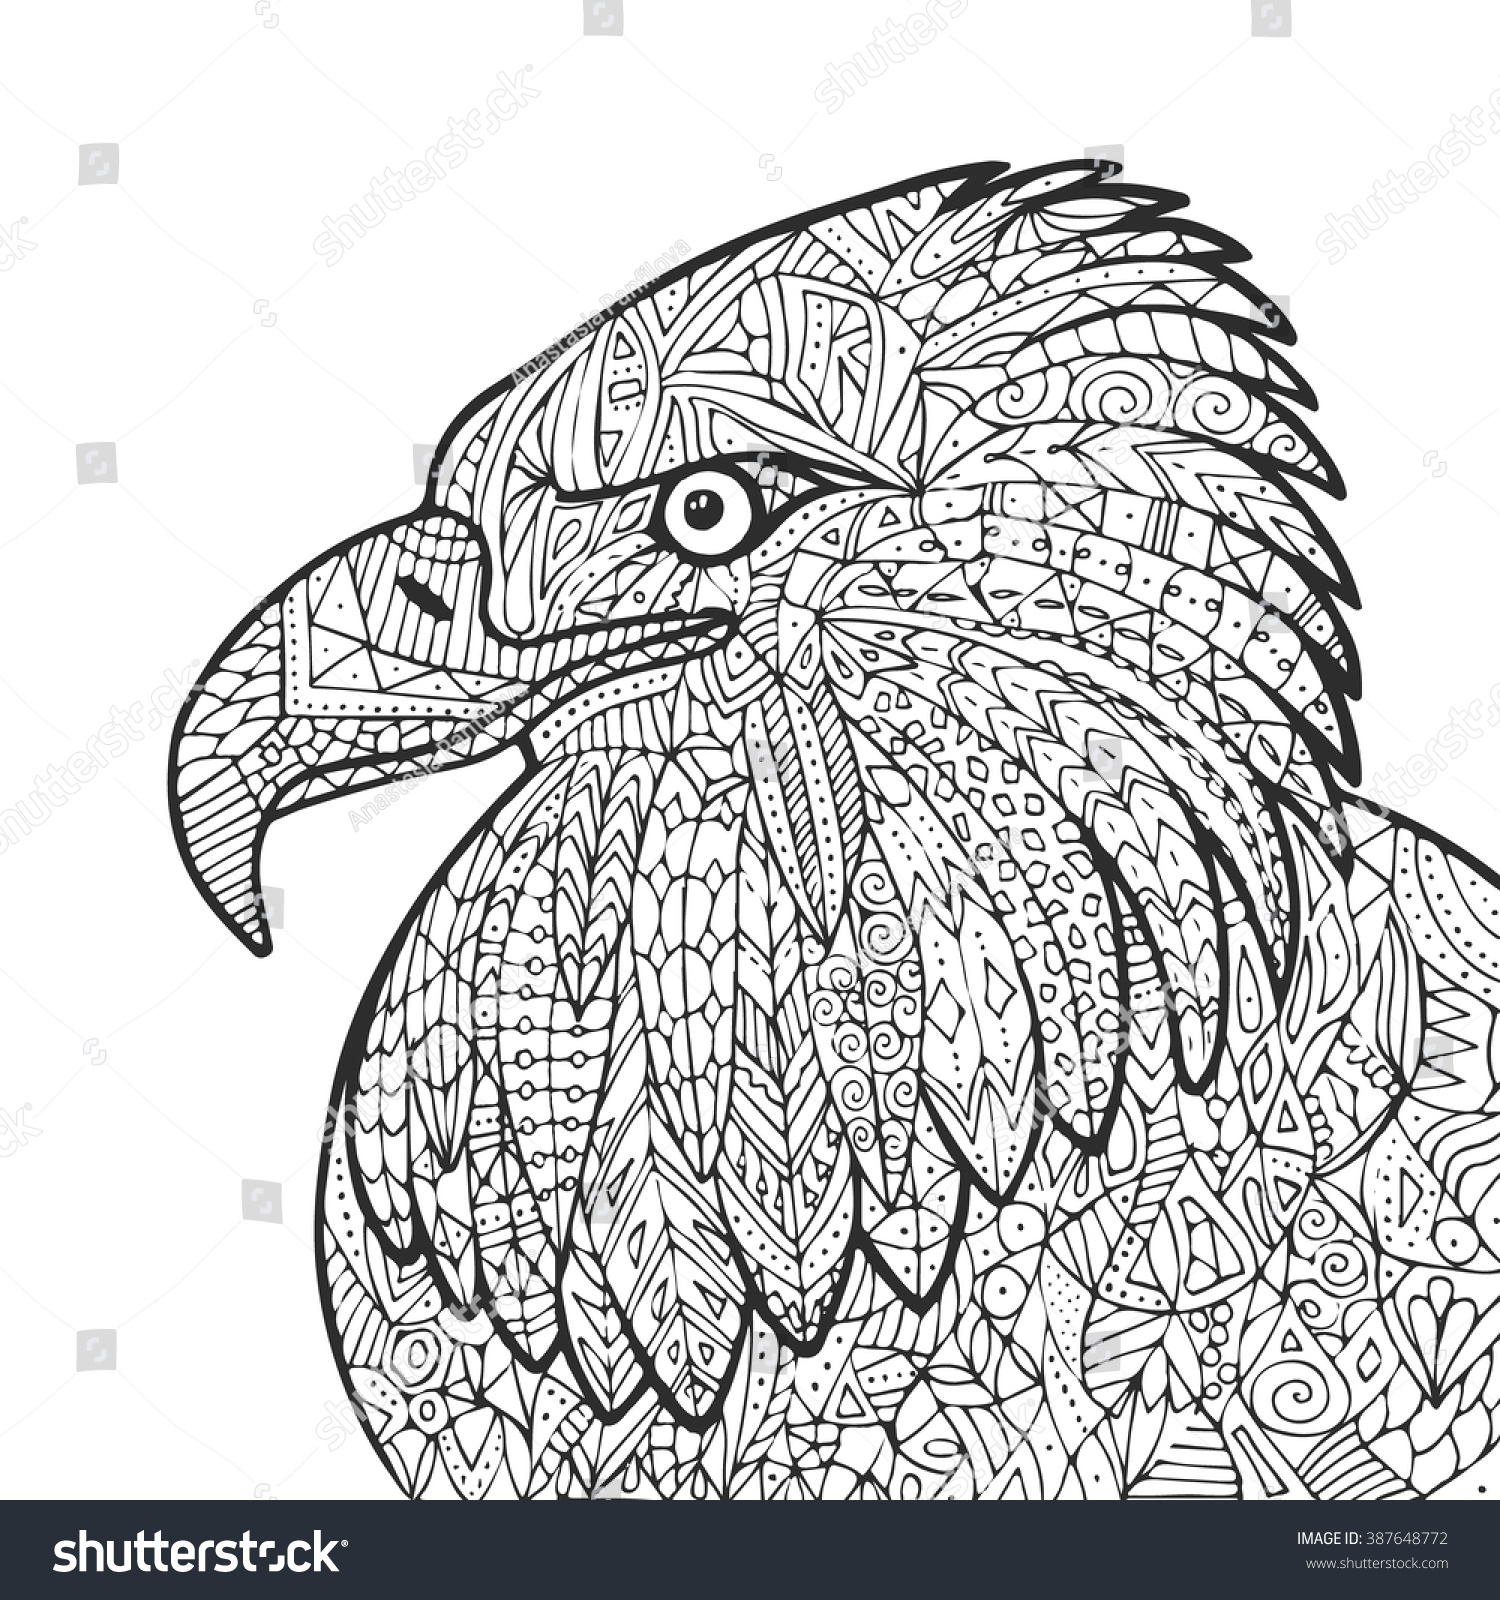 Vector Hand Drawn Eagle Bird Illustration For Adult Coloring Book